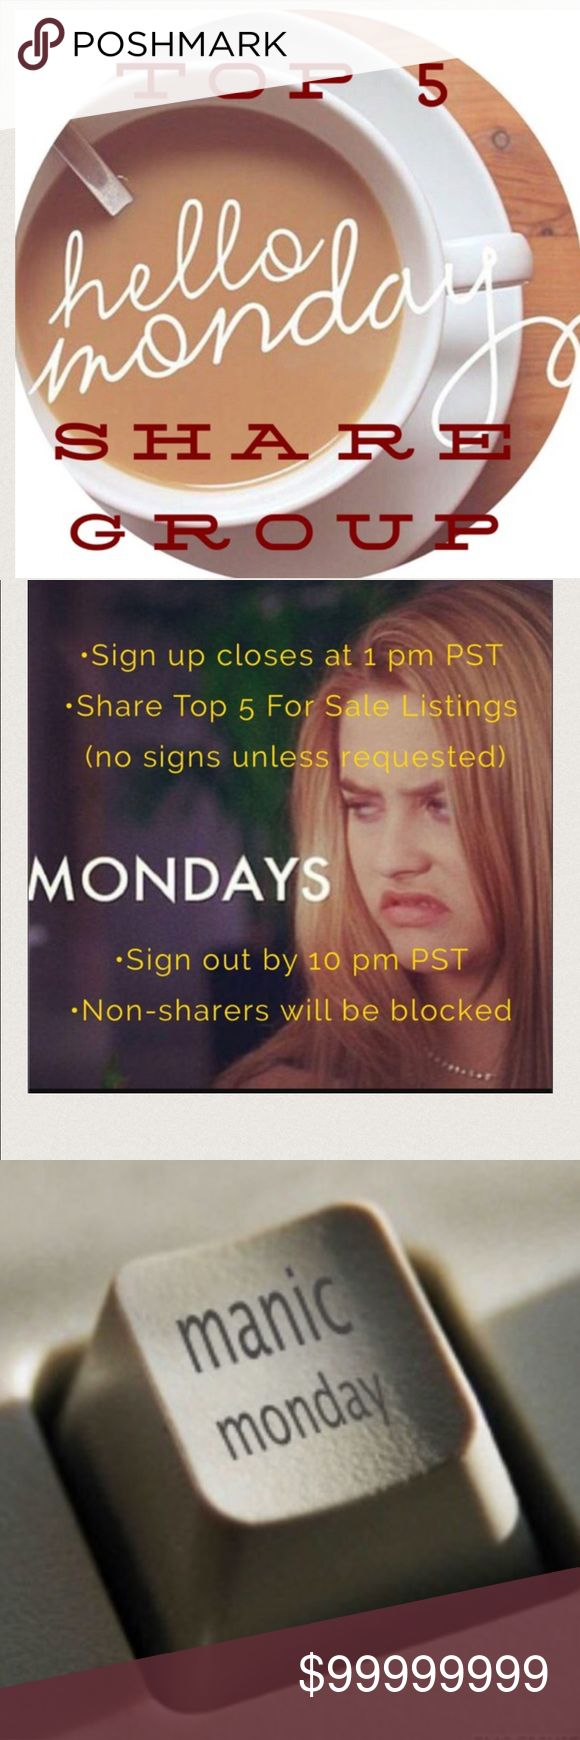 Closed- please sign out☕️1/23 Manic Monday Top 5 ☕️1/23 - Manic Monday Top 5 Share Group ☕️☕️Sign up below with @your name (emoji welcome but reserve chat for AFTER closing)  ☕️Share TOP 5 for Sale Items in each closet  ☕️☕️Do NOT share Signs unless Requested ☕️☕️☕️Sharing starts as early as 5 am (no earlier) ☕️☕️I will officially Close Group at 1 pm PST ☕️☕️☕️PLEASE Sign out AFTER group is officially closed & all shares are completed ☕️☕️☕️☕️Shares must be completed by 10 pm PST☕️We are all…